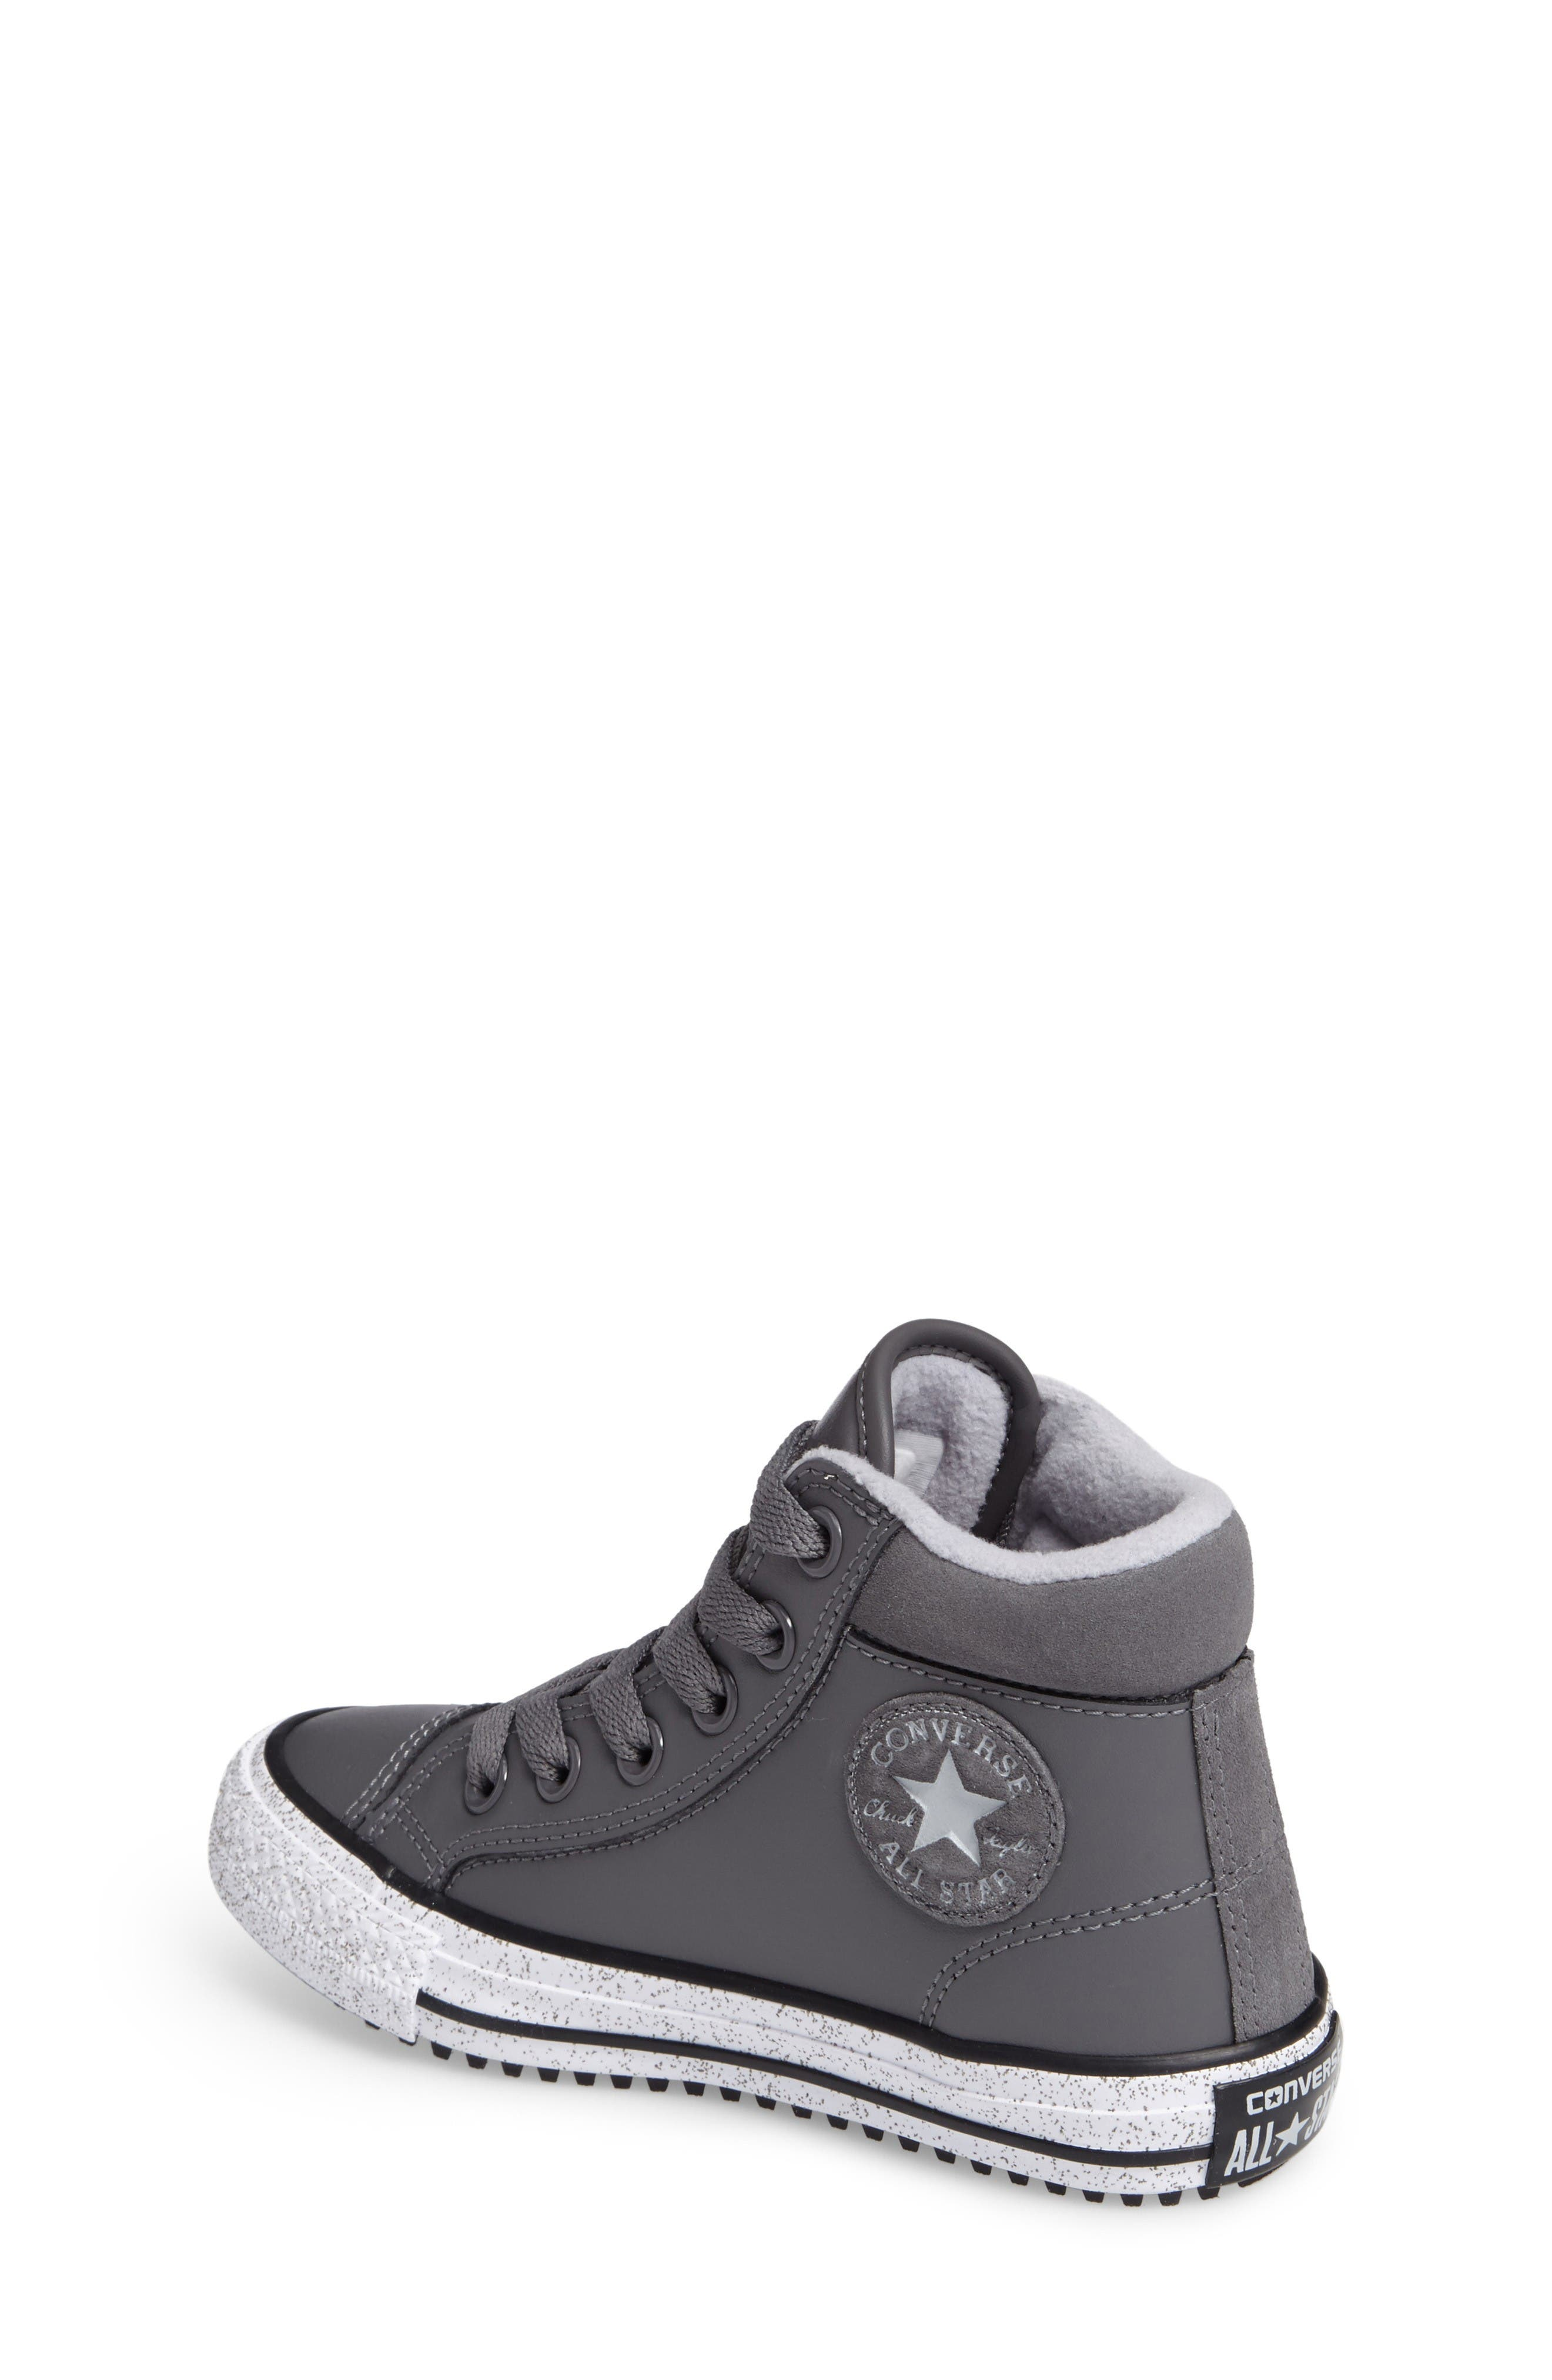 Alternate Image 2  - Converse Chuck Taylor® All Star® PC High Top Sneaker (Toddler, Little Kid & Big Kid)